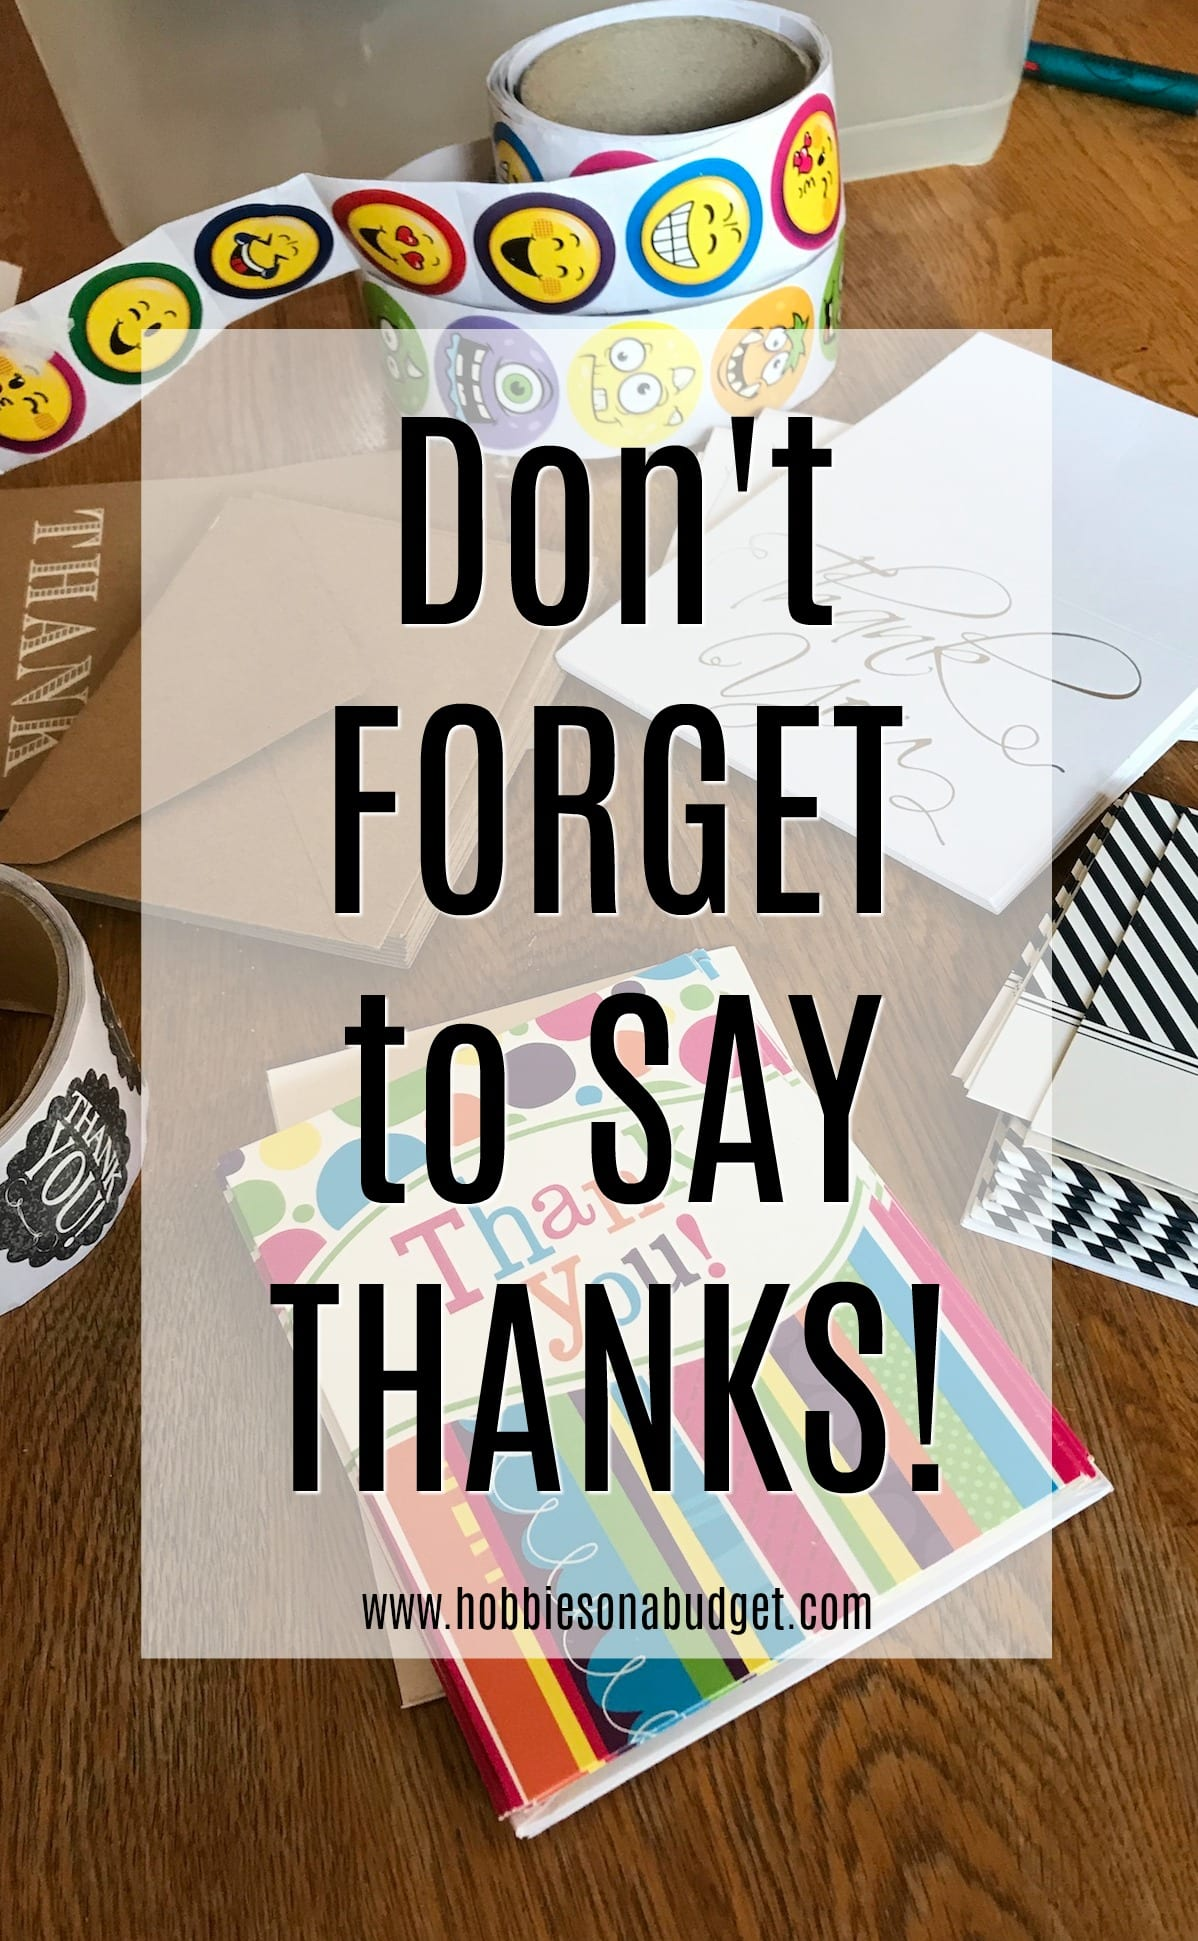 Don't forget to say thanks